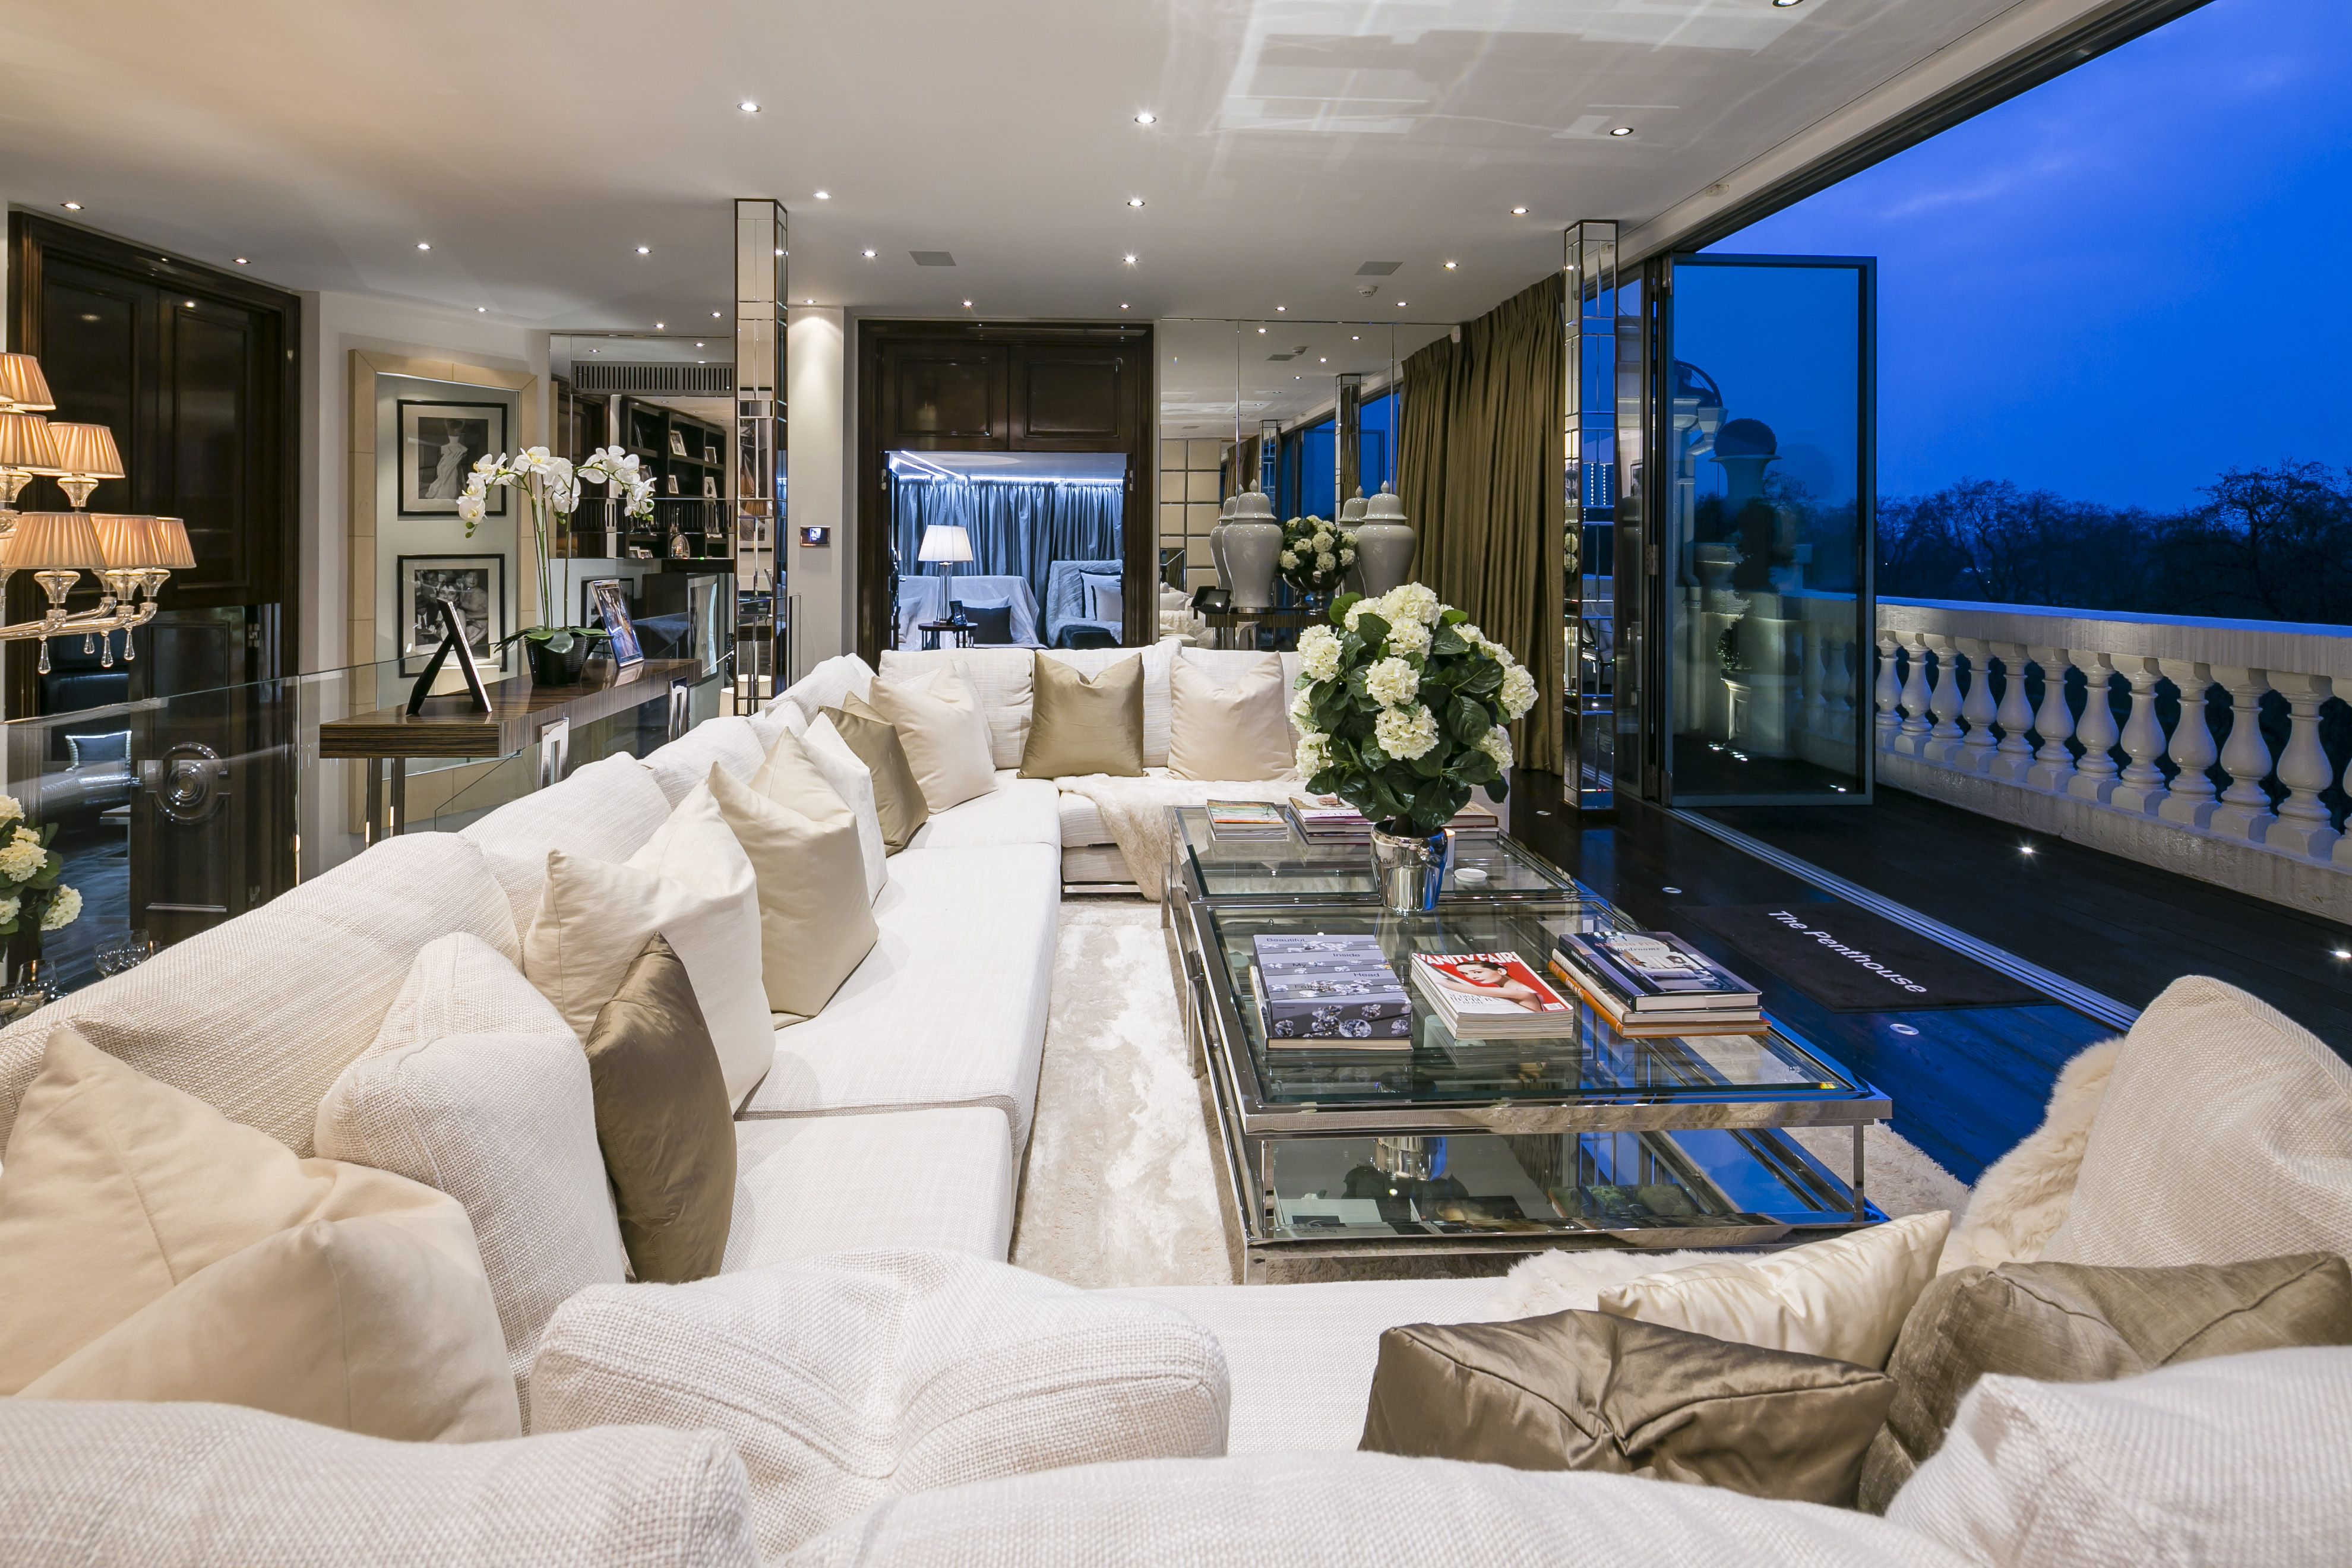 Splendid Luxury Apartments For Sale In Westminster London It Features A Large Selection Of Shopping Dining And Entertain Luxury Penthouse Penthouse London Luxury Apartments